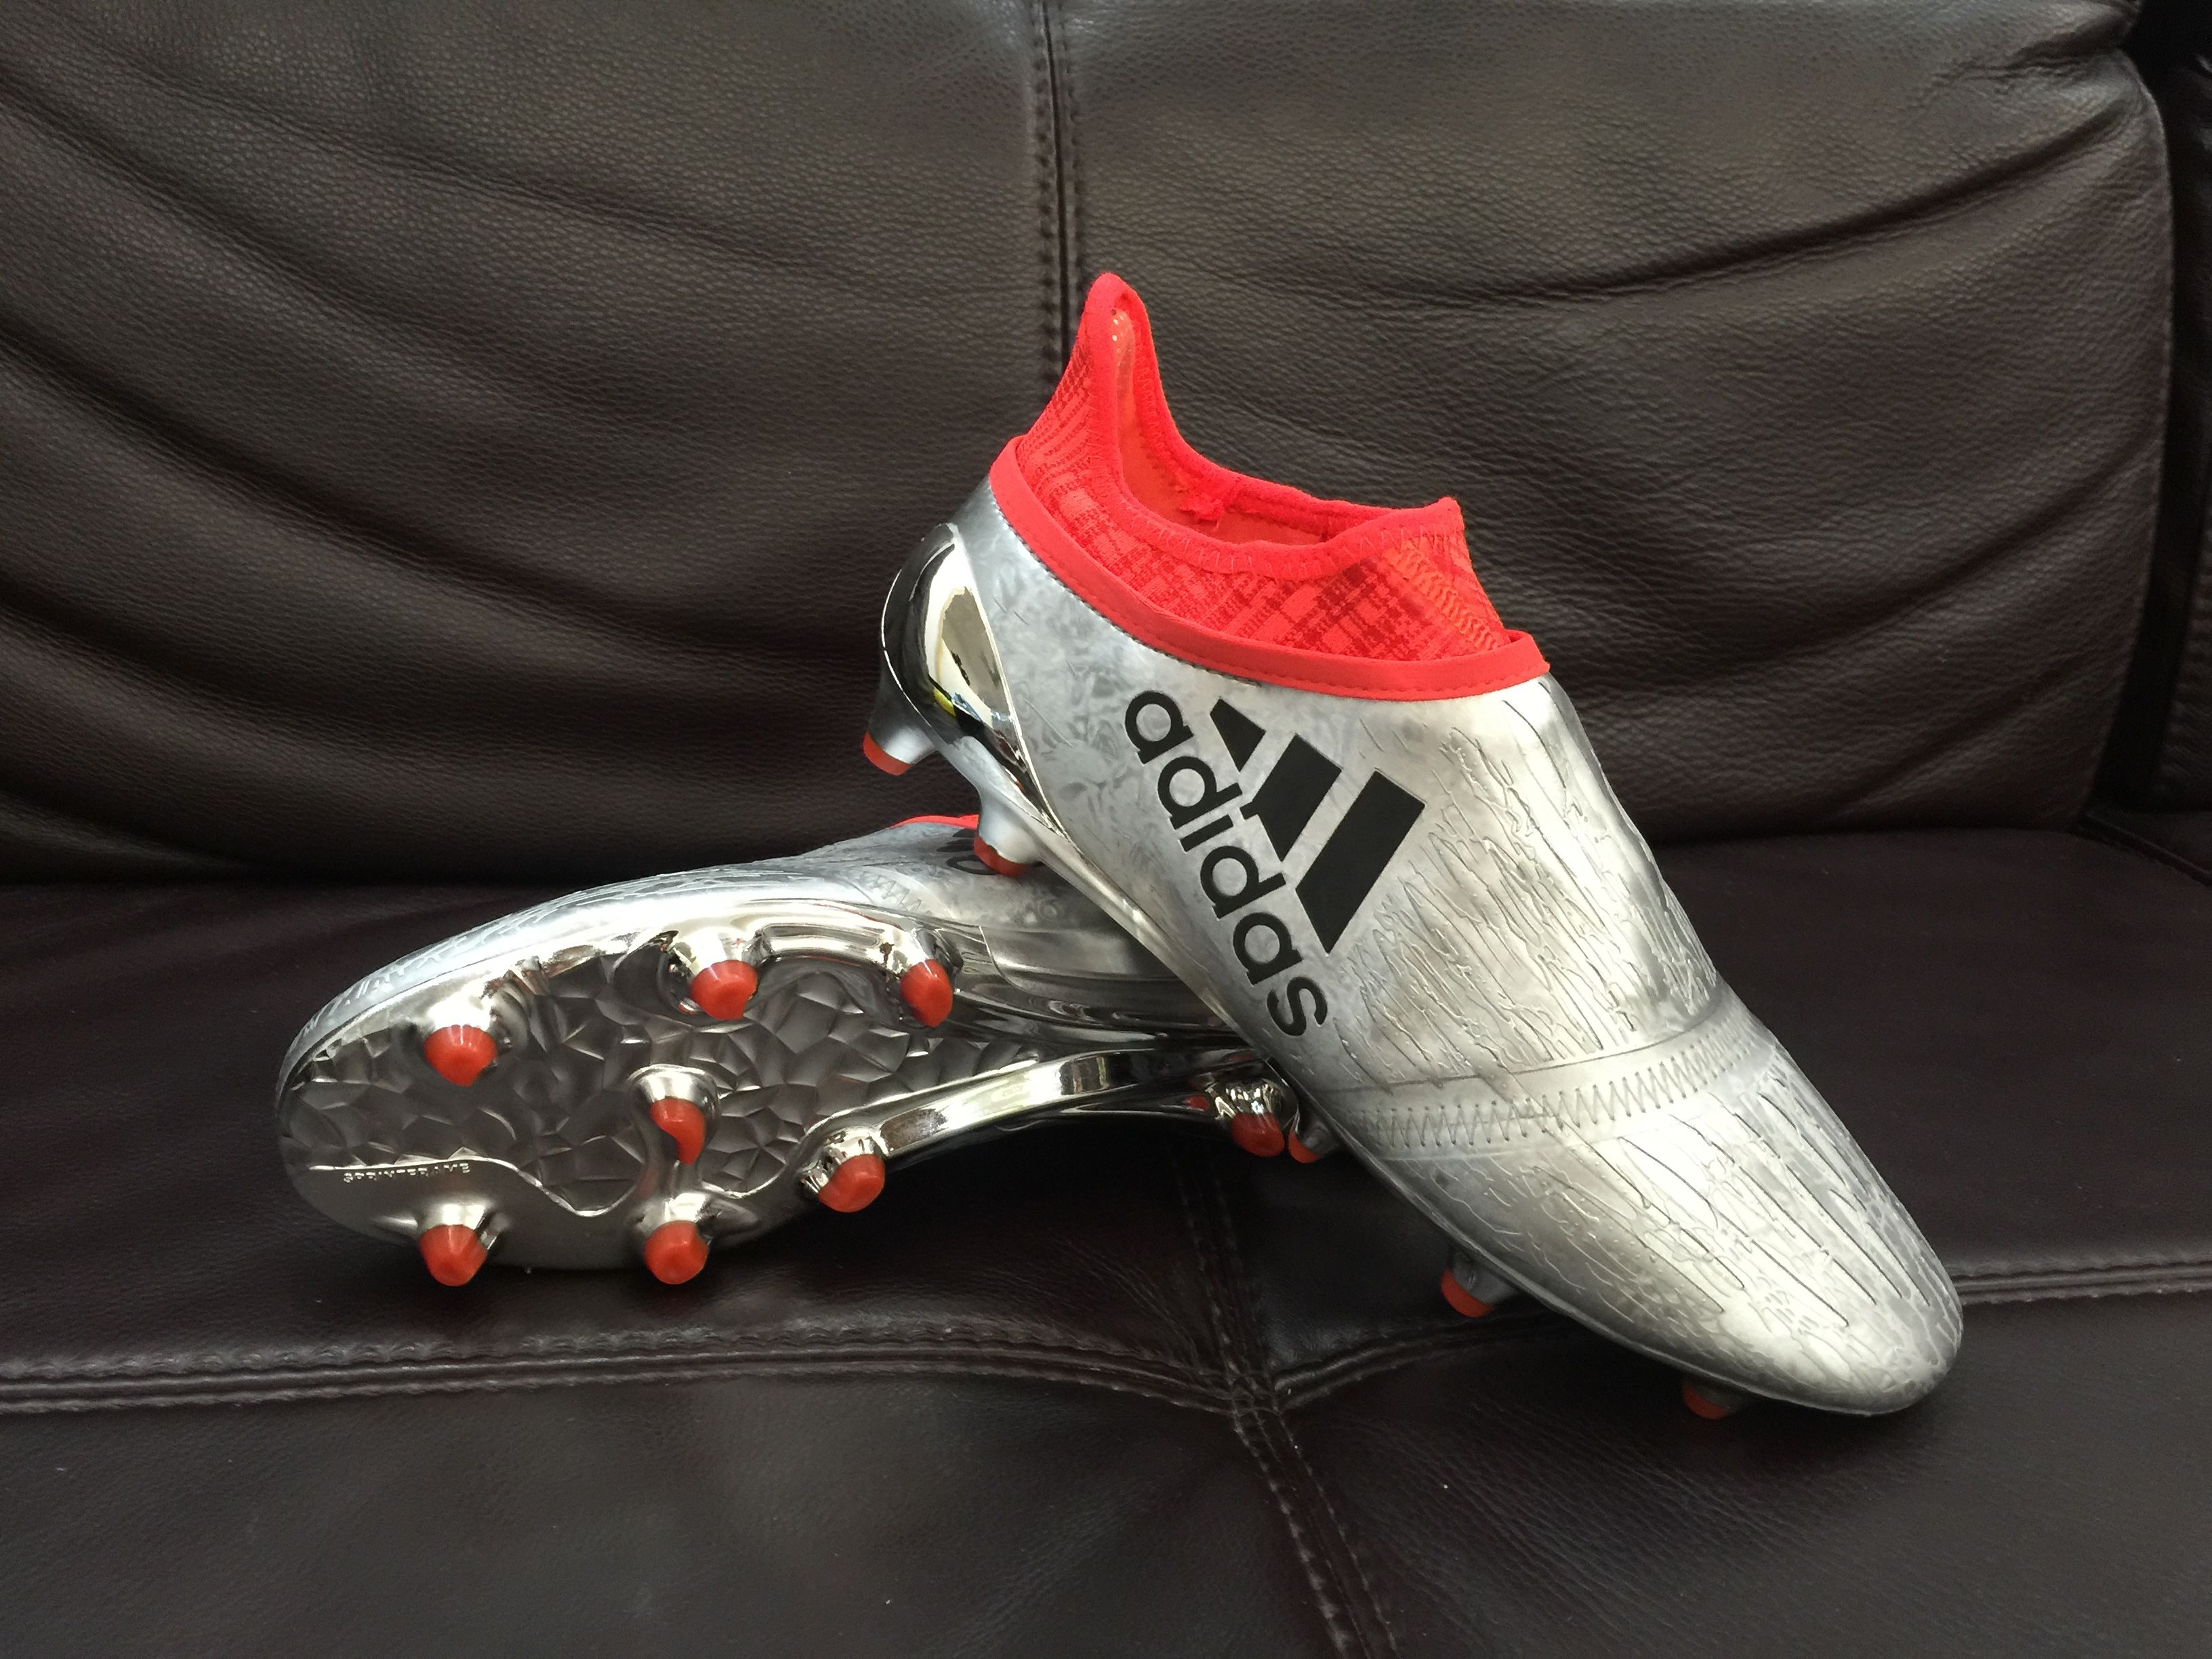 Sport kicks uk is new football boots from the top brands like Nike and  adidas. Save on hard to find best football boots only at sportskick.